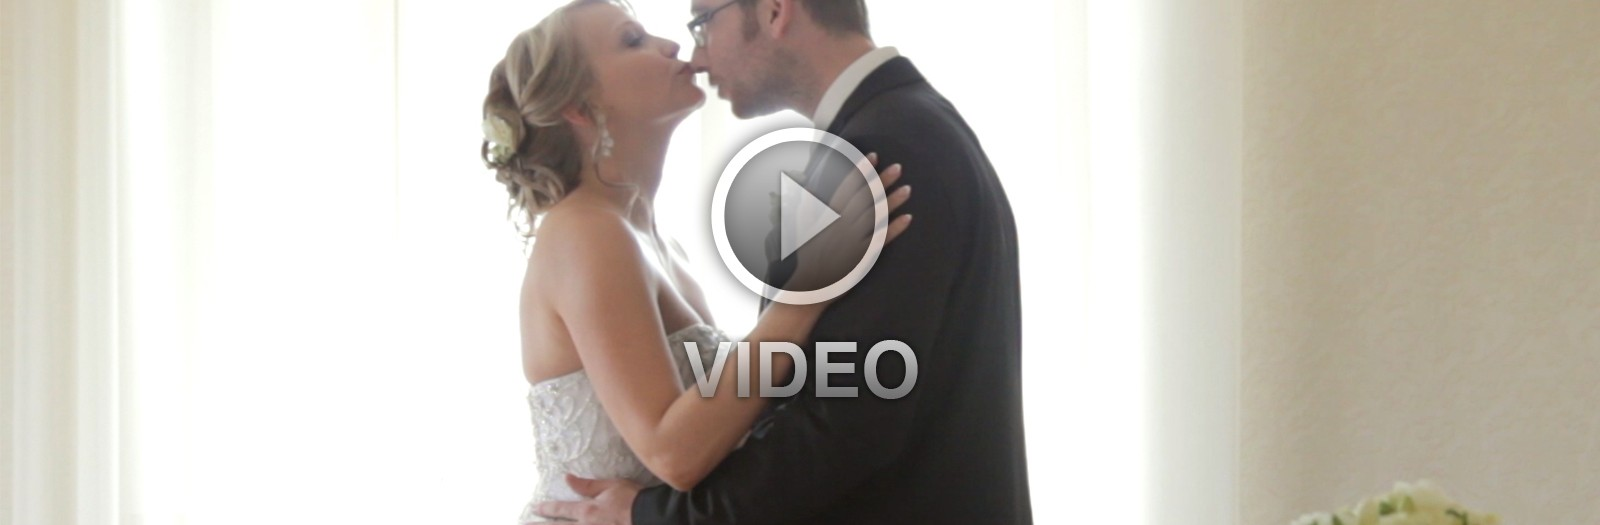 Veronika + Radovan - 6.7.2013 - Video